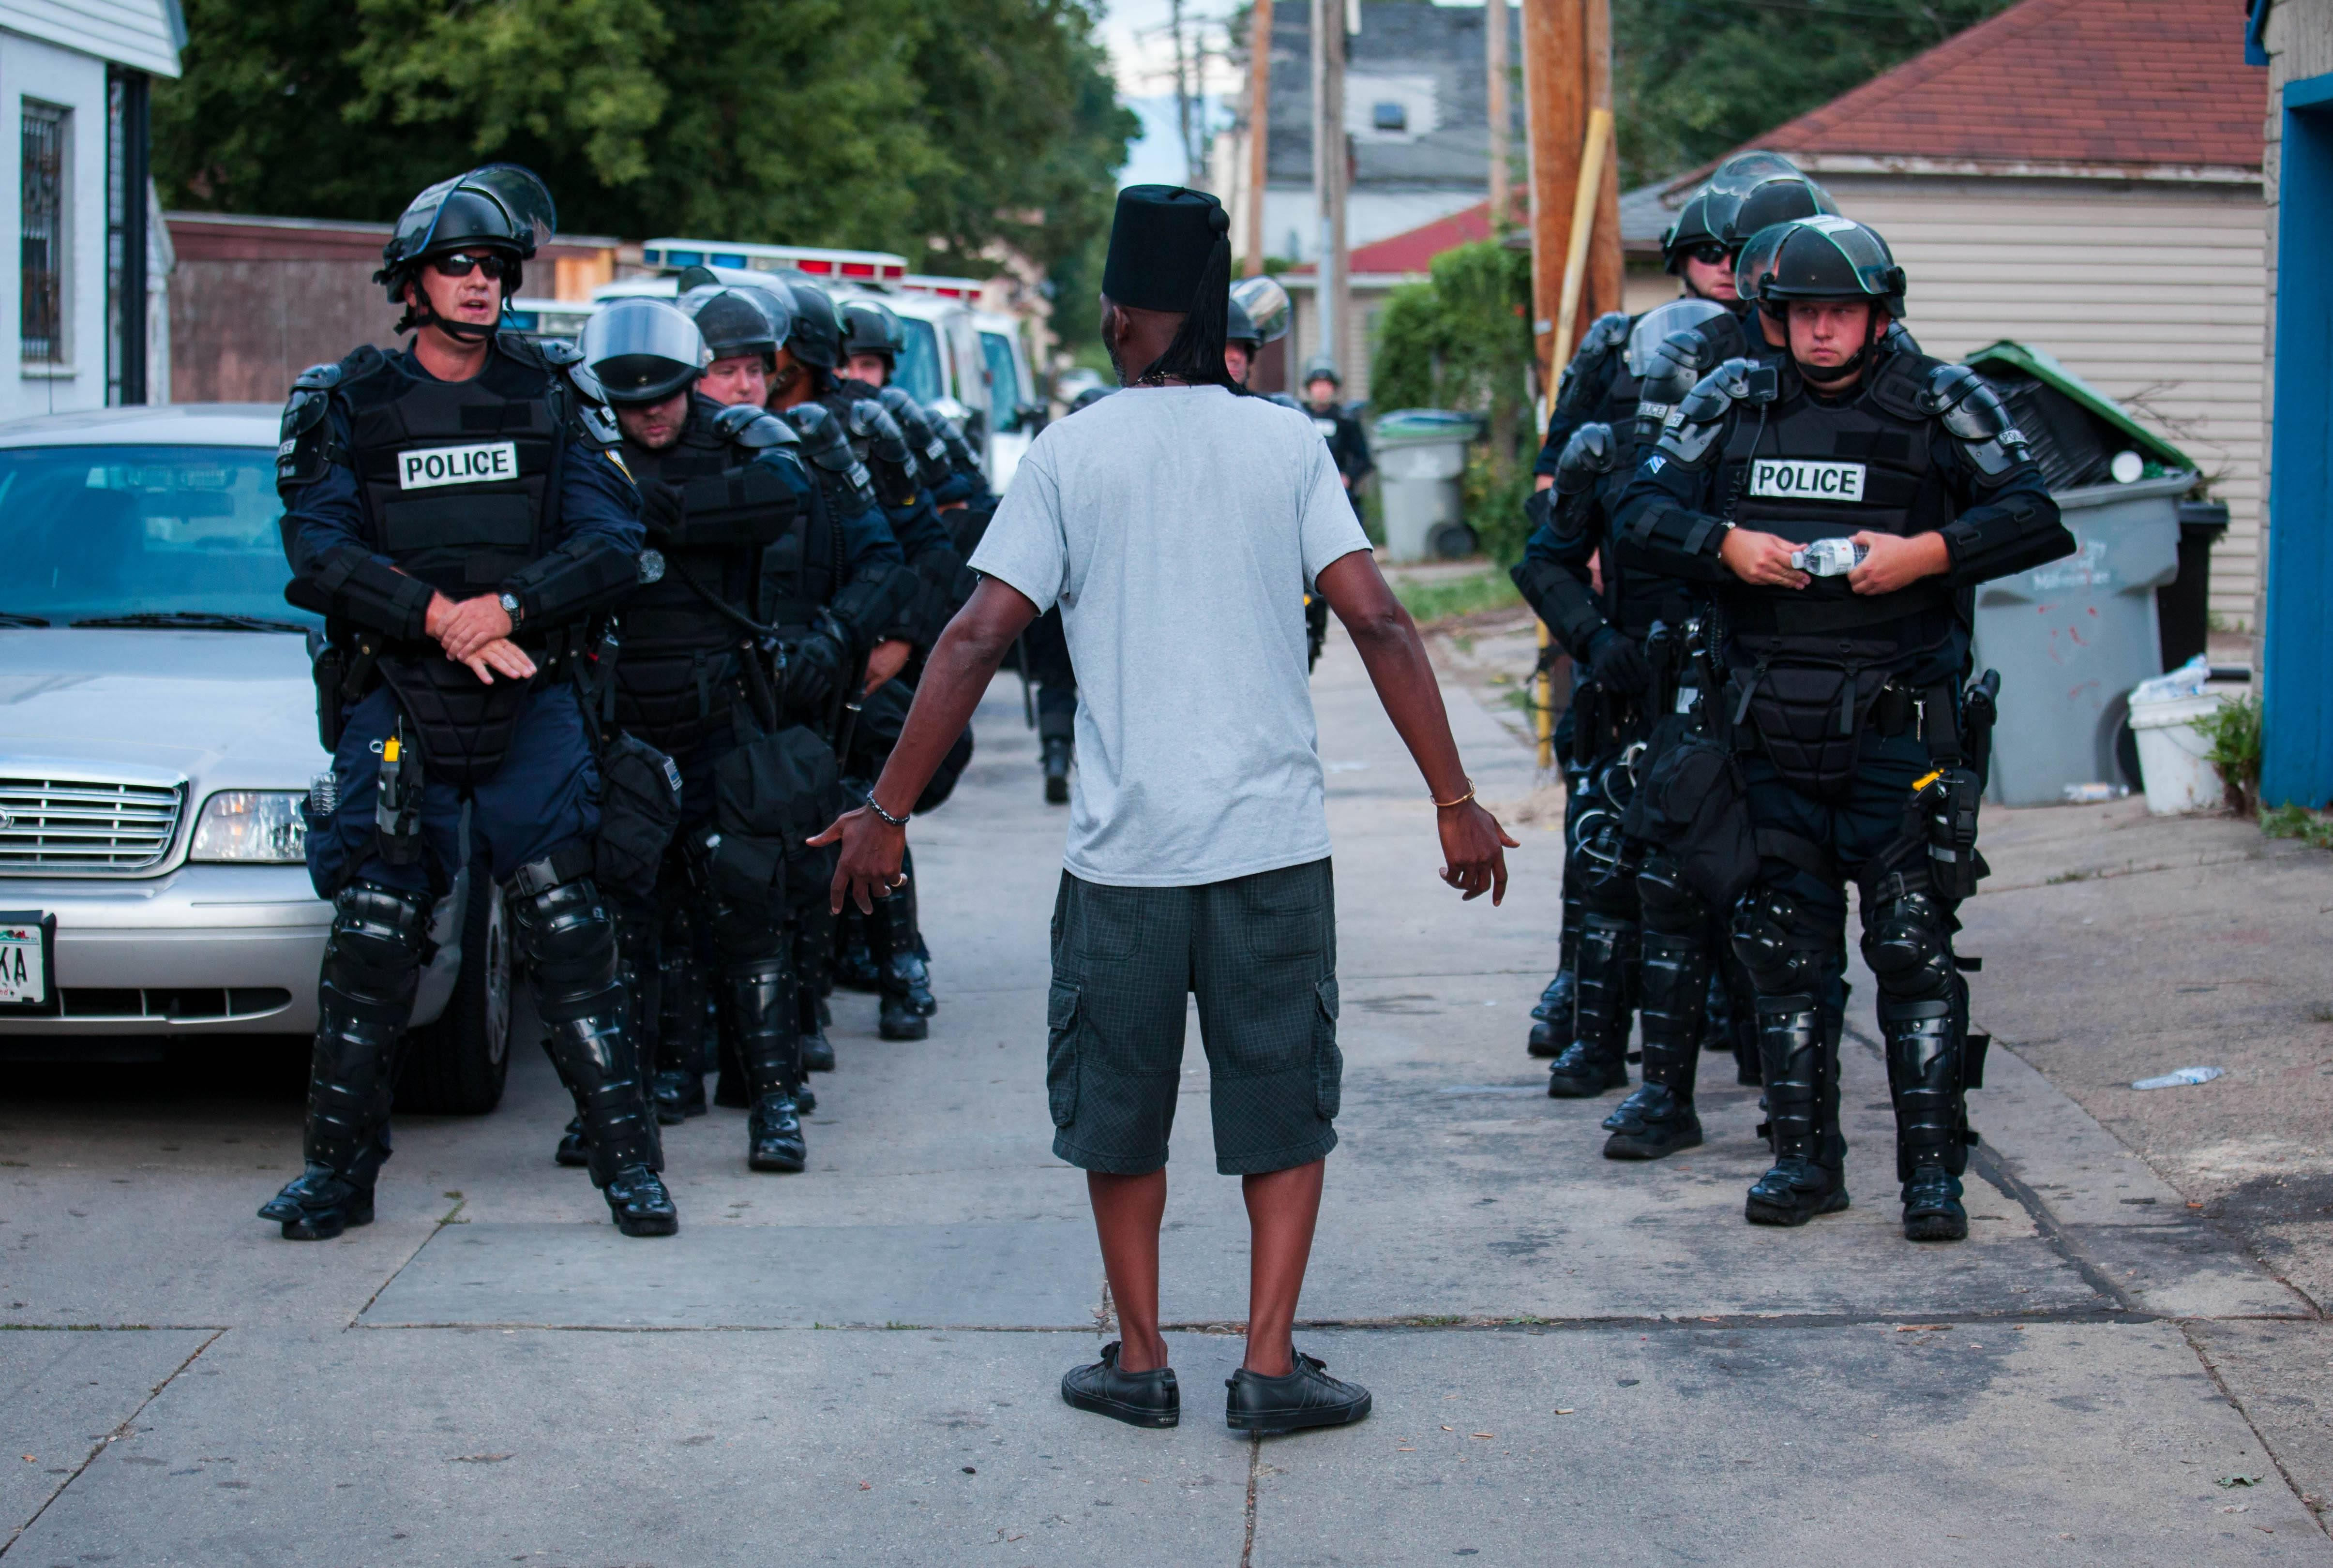 A man talks to police in riot gear